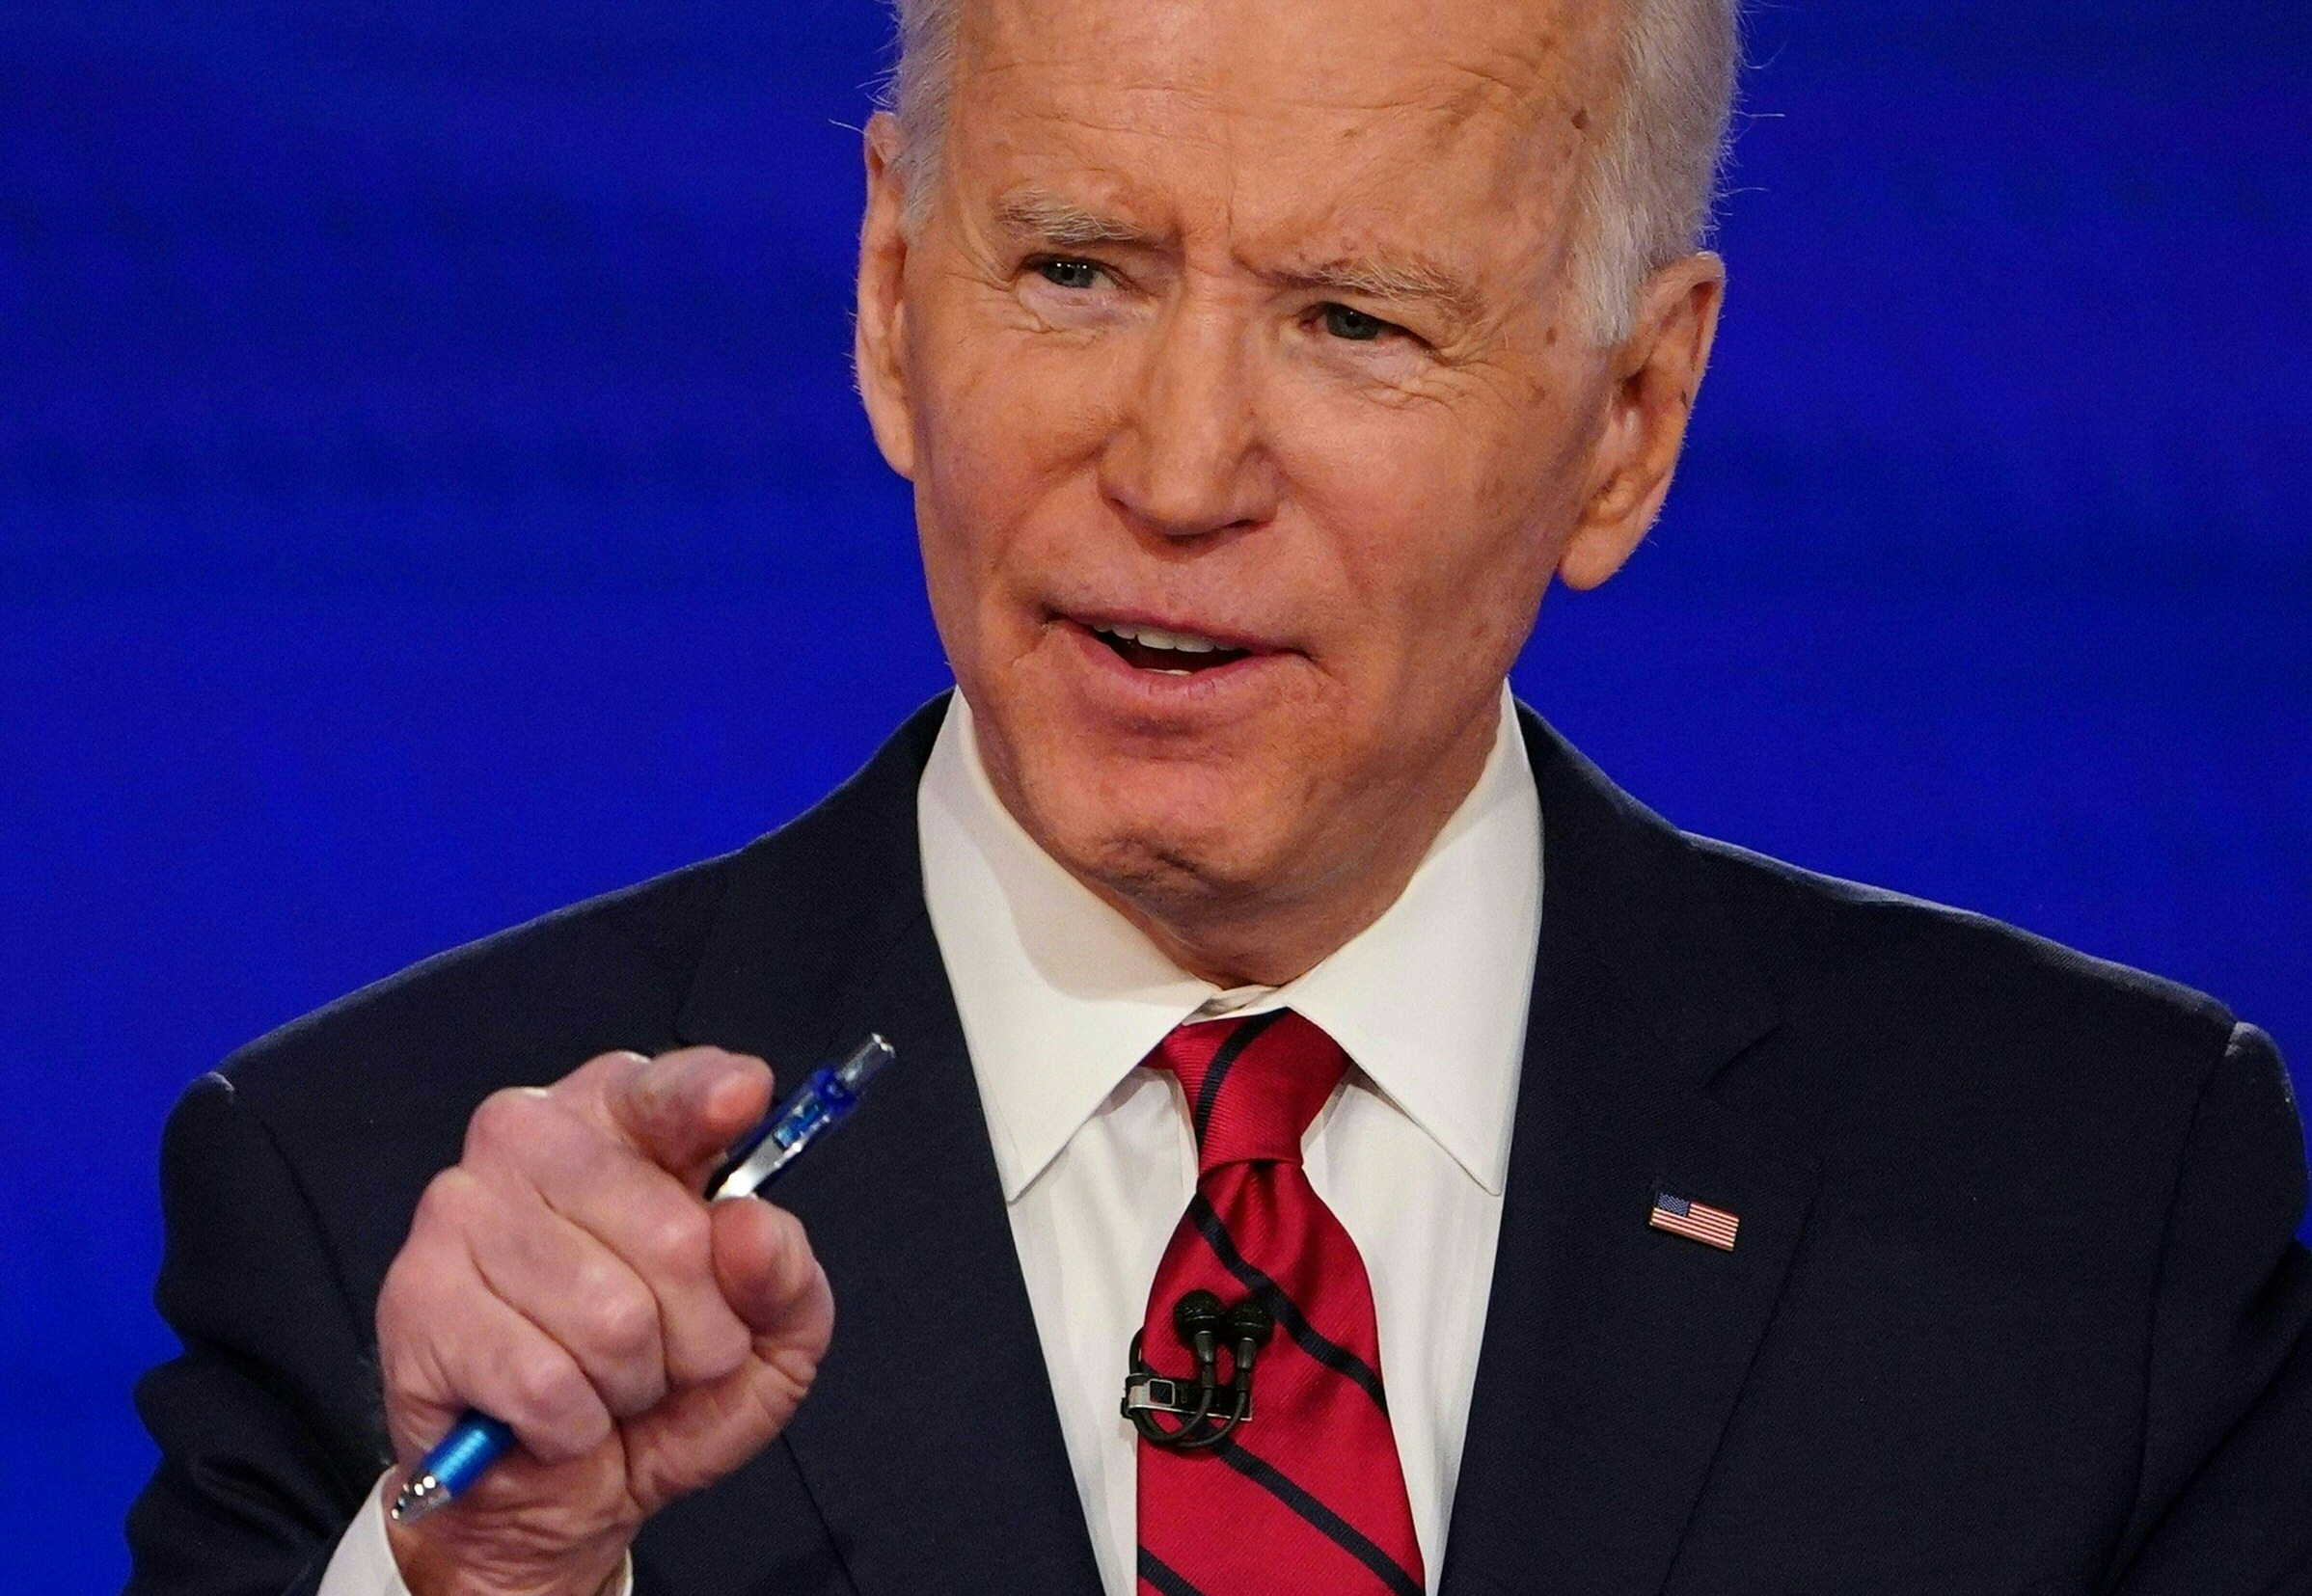 Trump's supporters are more excited to vote, but Biden's lead is growing